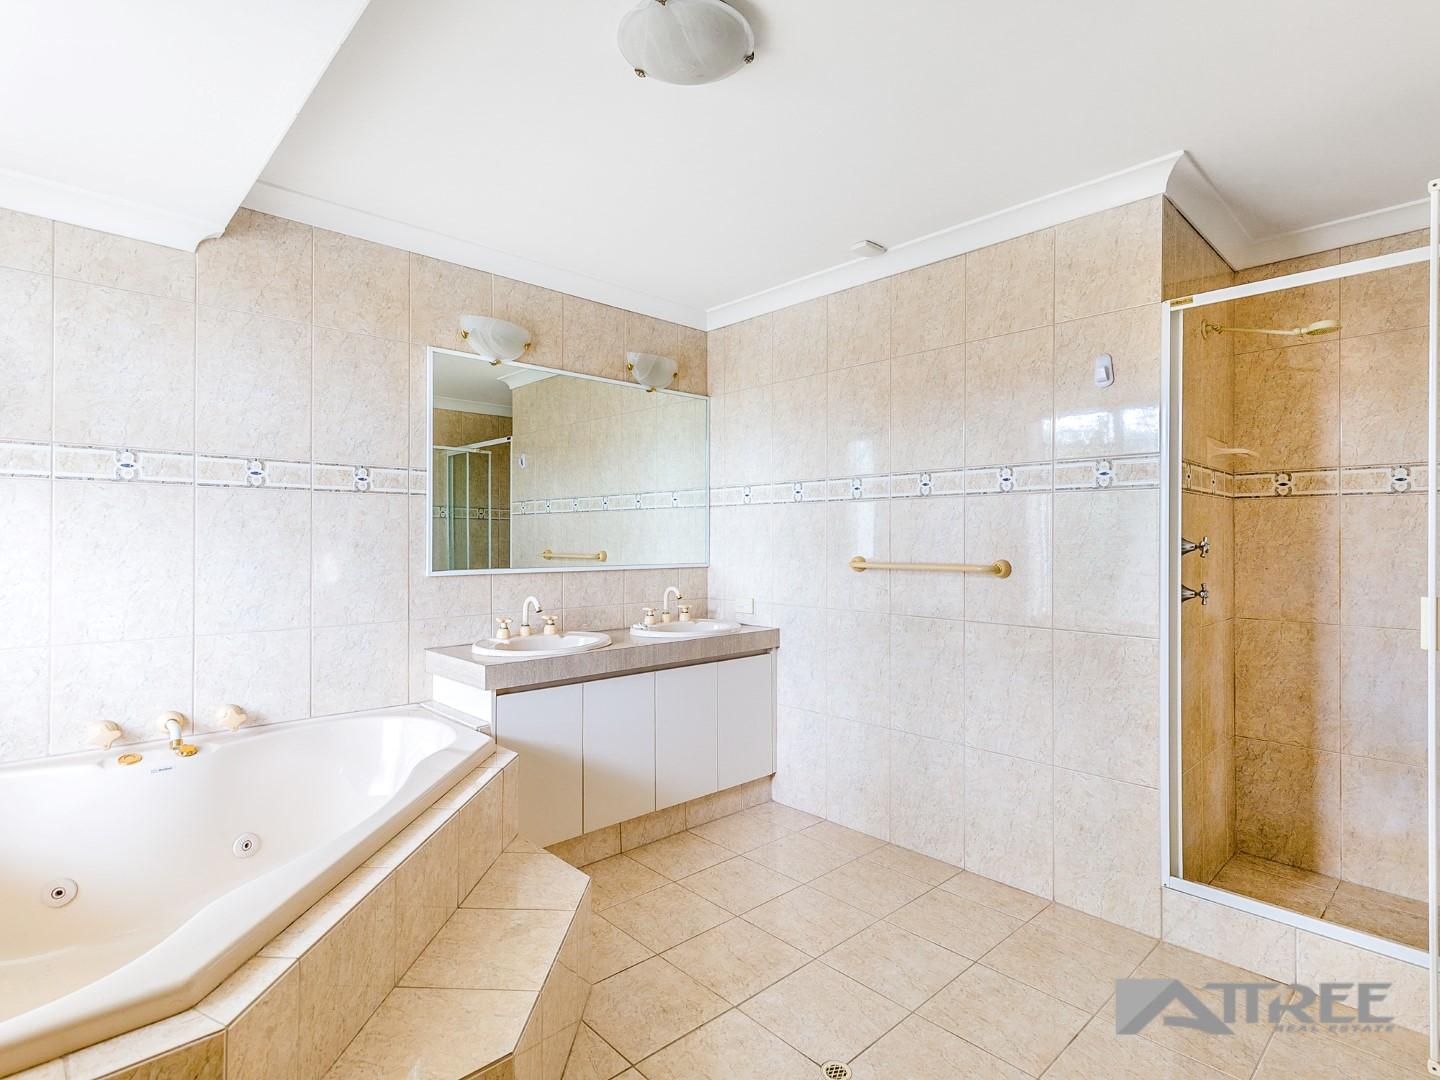 Property for sale in CANNING VALE, 73 Sandringham Promenade : Attree Real Estate